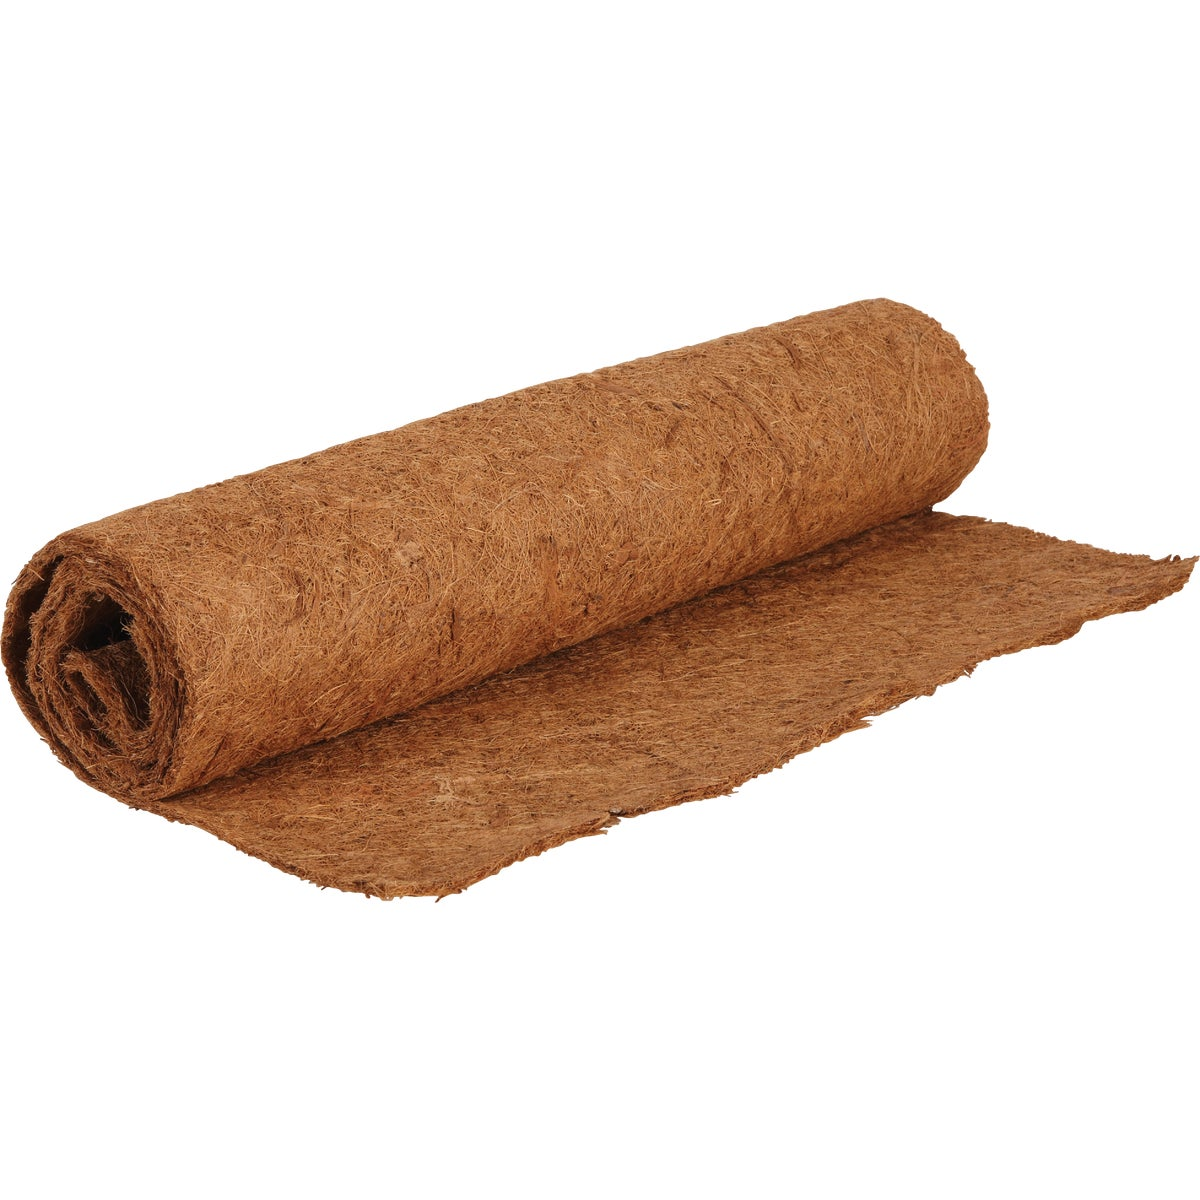 """36""""X60"""" COCO LINER ROLL - LCC-36 by Do it Best"""